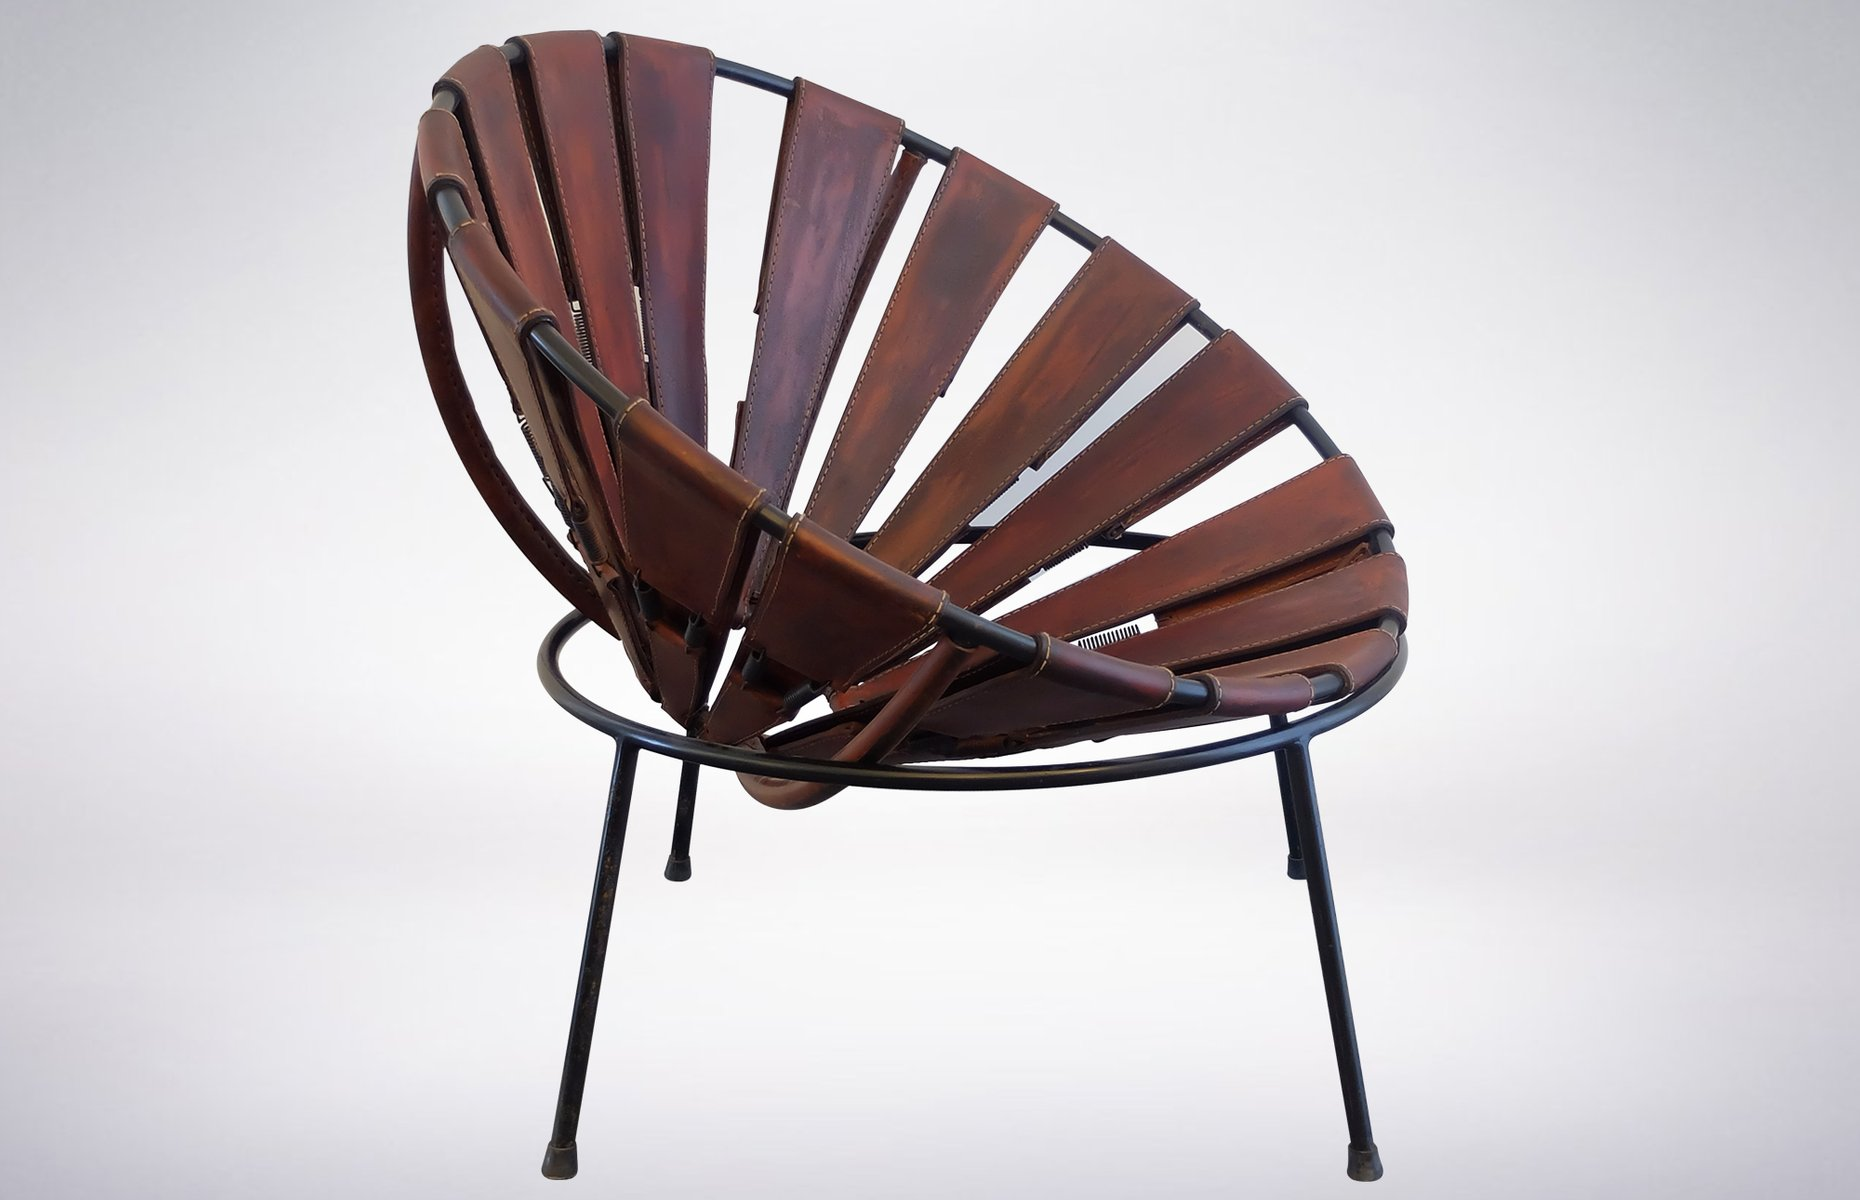 bowl chair in leather by lina bo bardi 1950s for sale at pamono. Black Bedroom Furniture Sets. Home Design Ideas